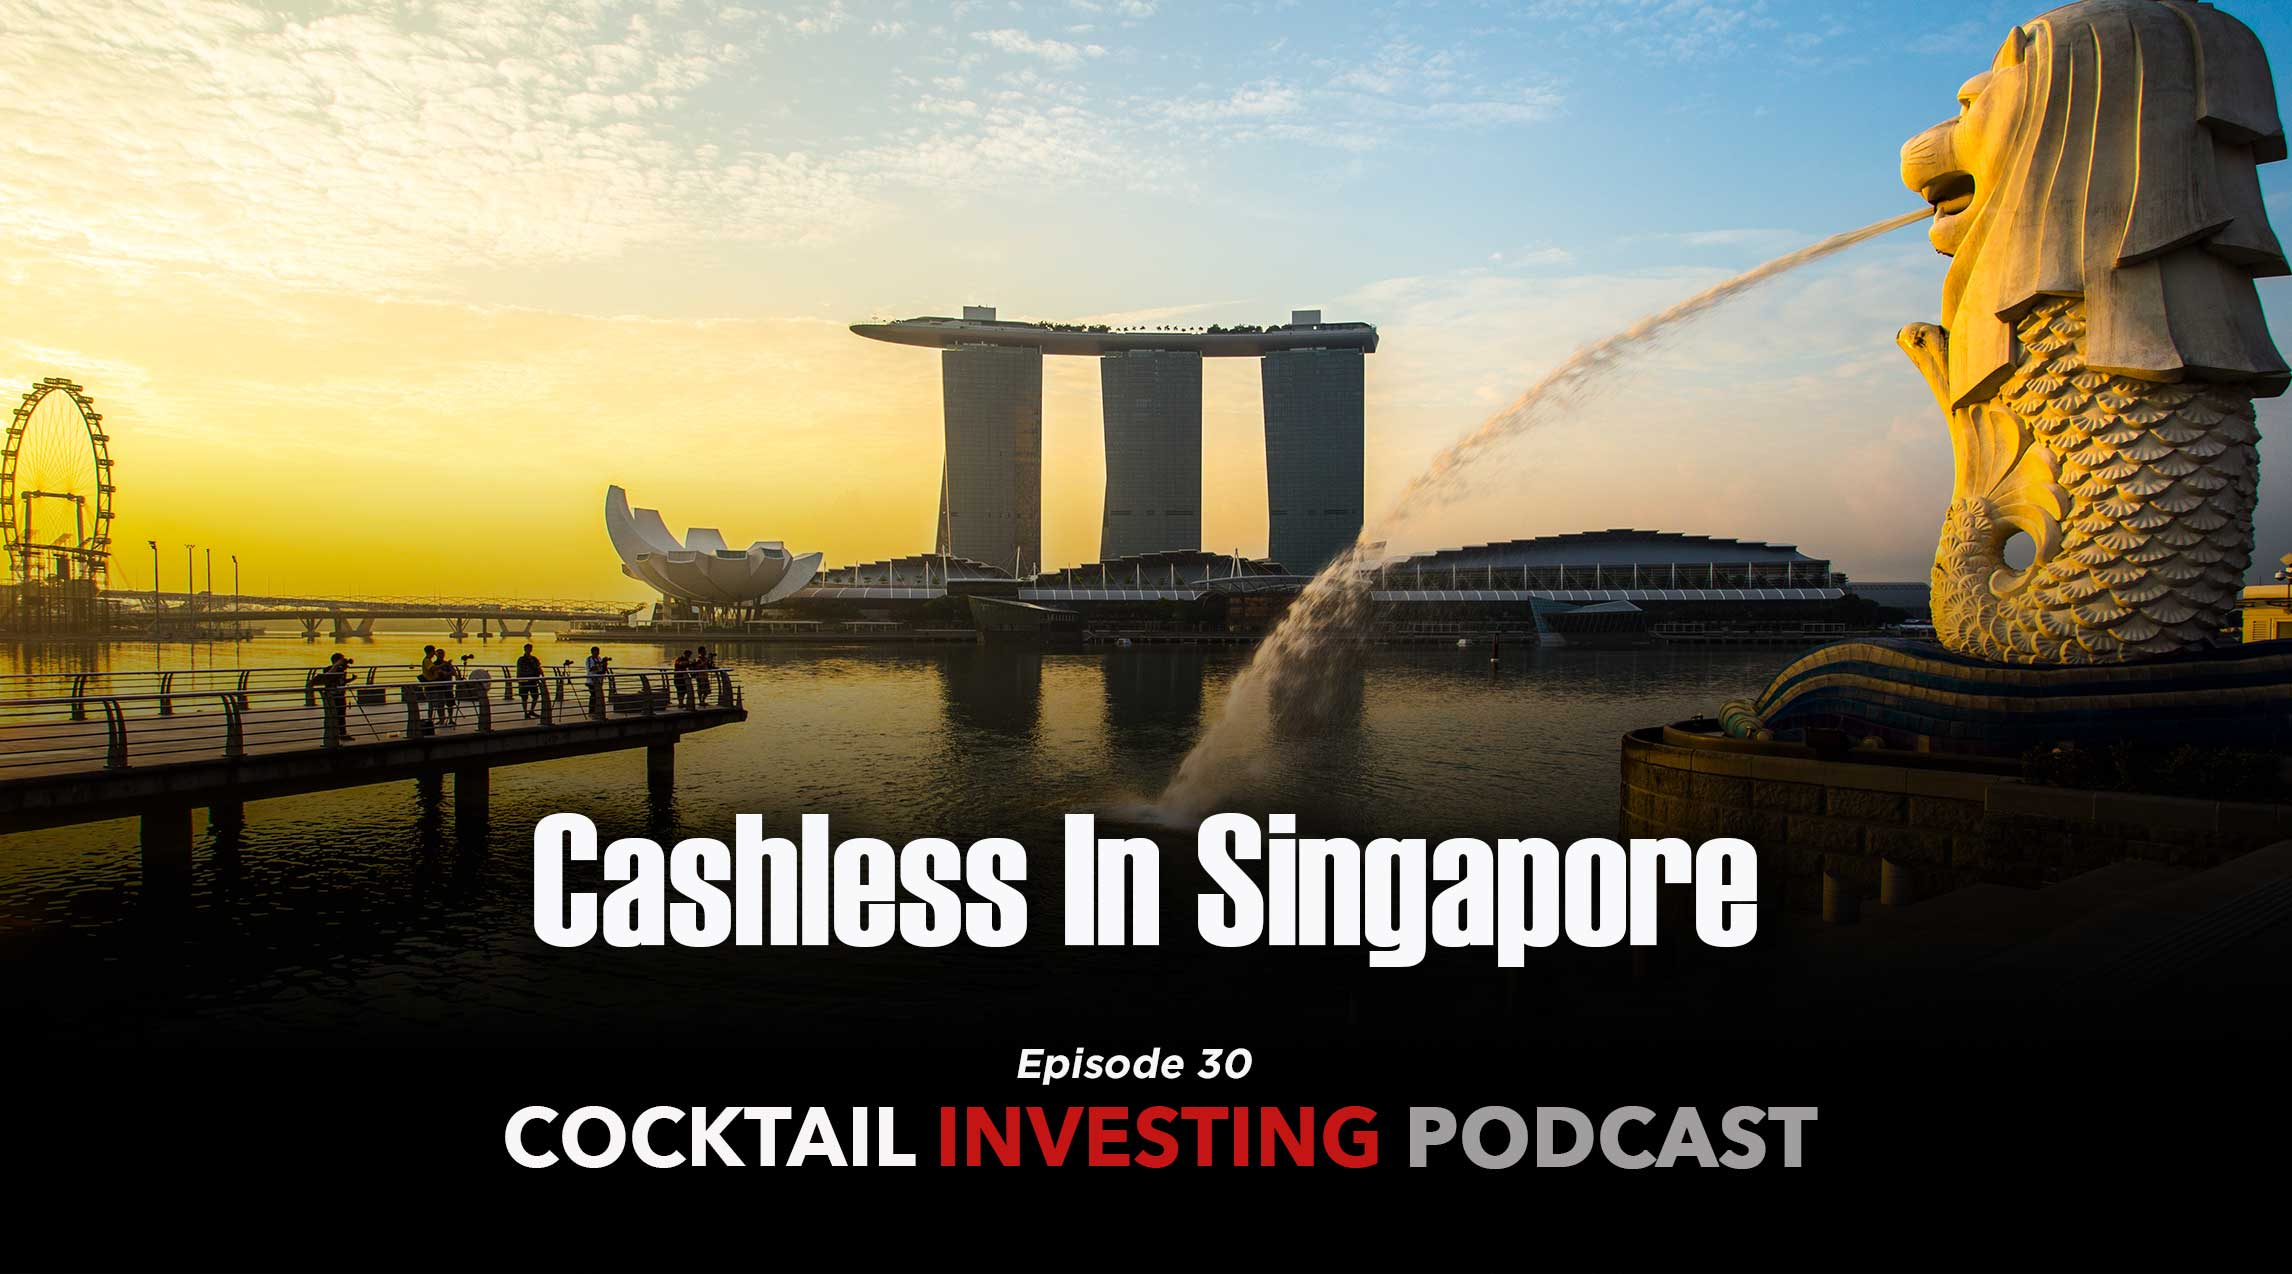 Episode 30: Cashless in Singapore